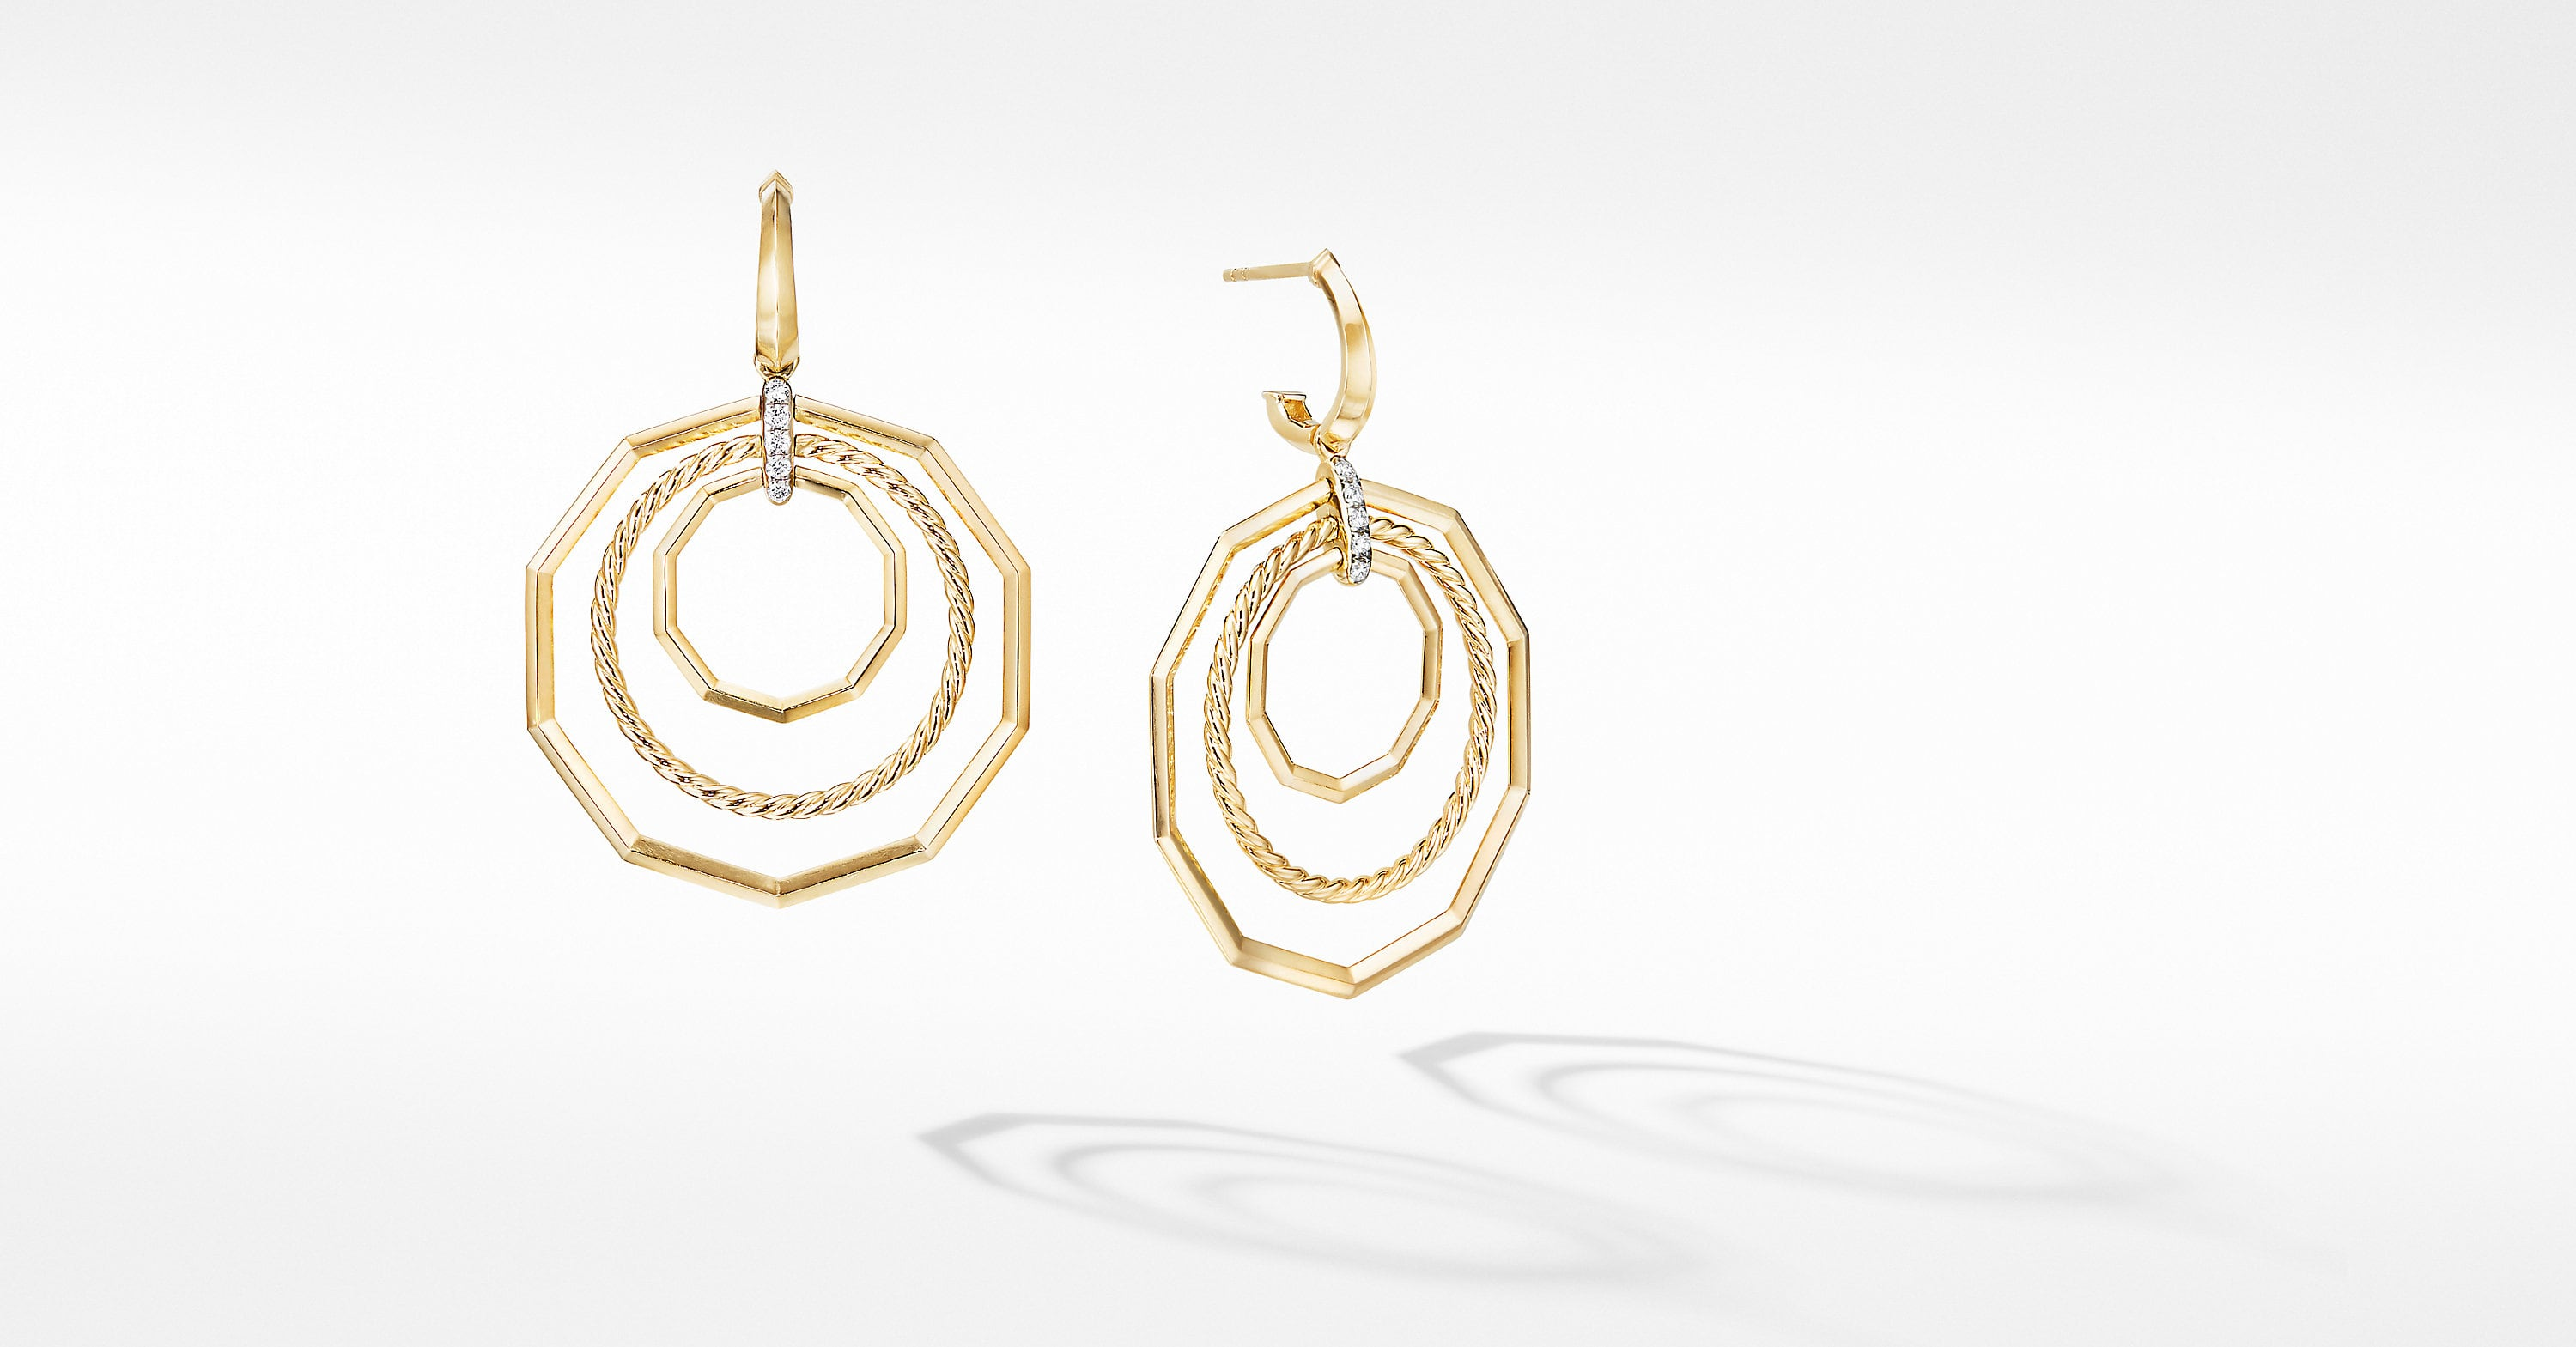 Stax Extra-Large Drop Earrings in 18K Yellow Gold with Diamonds